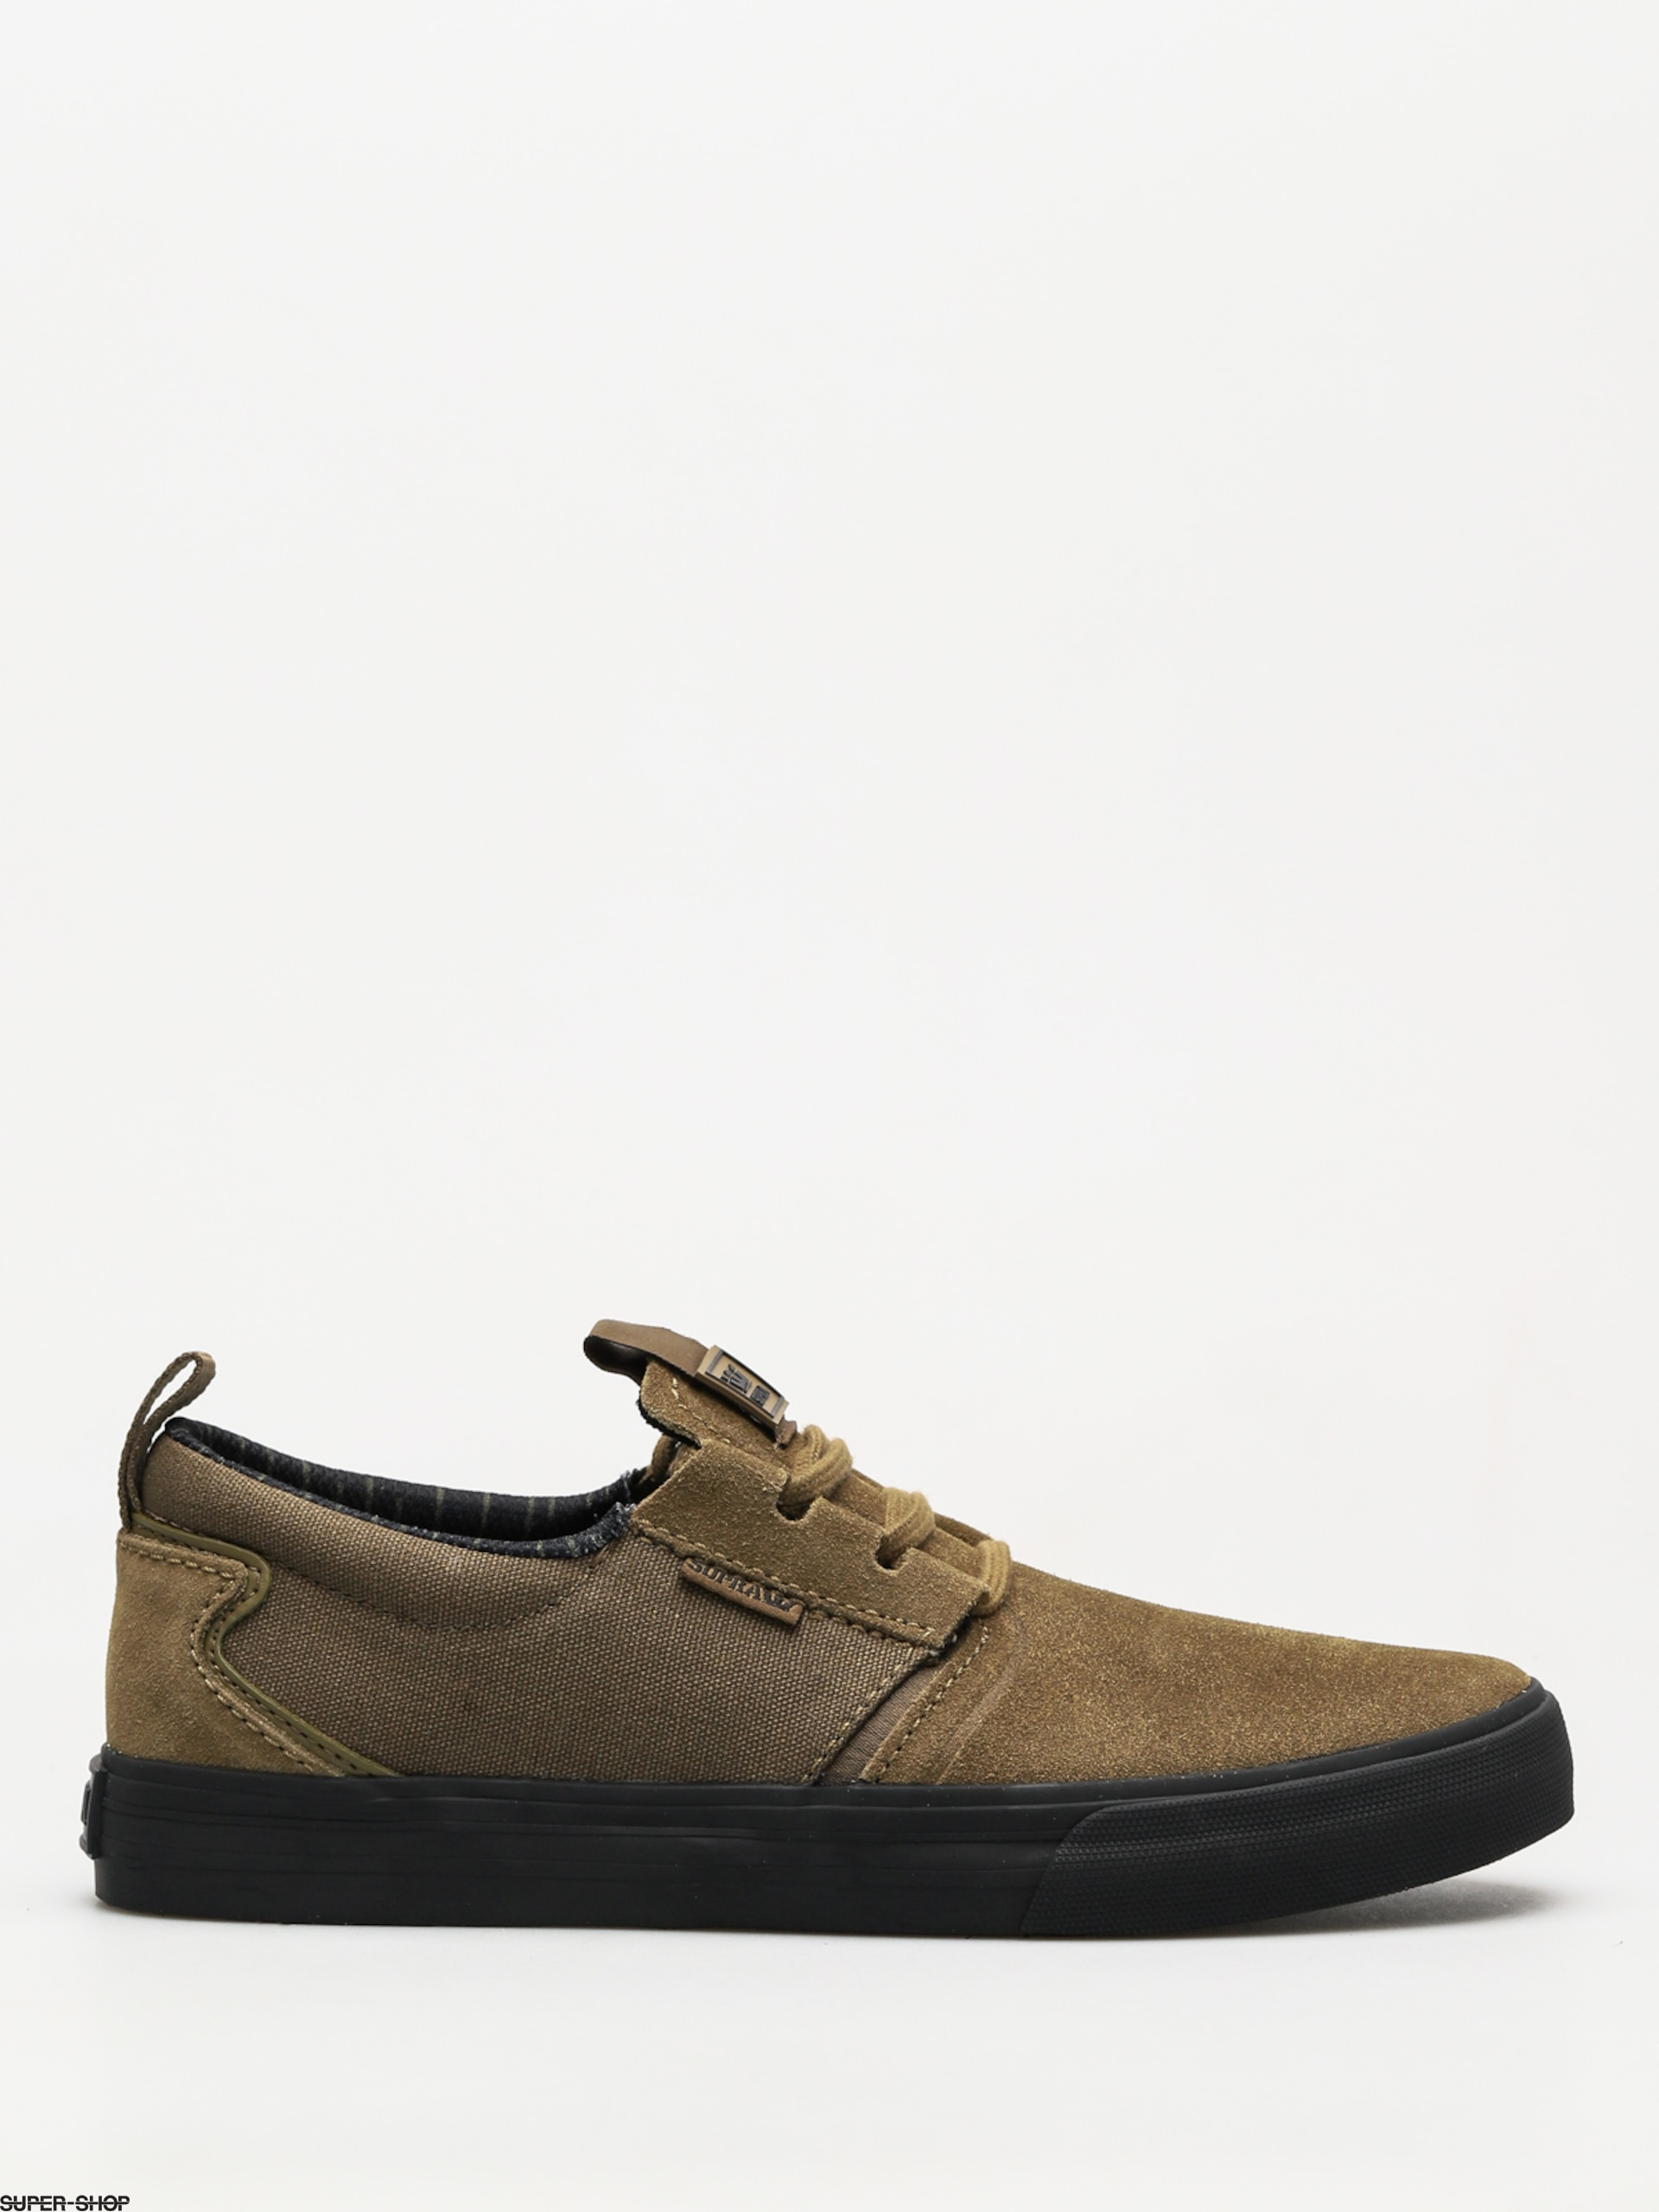 53d23697a166 968531-w1920-supra-shoes-flow-olive-black.jpg